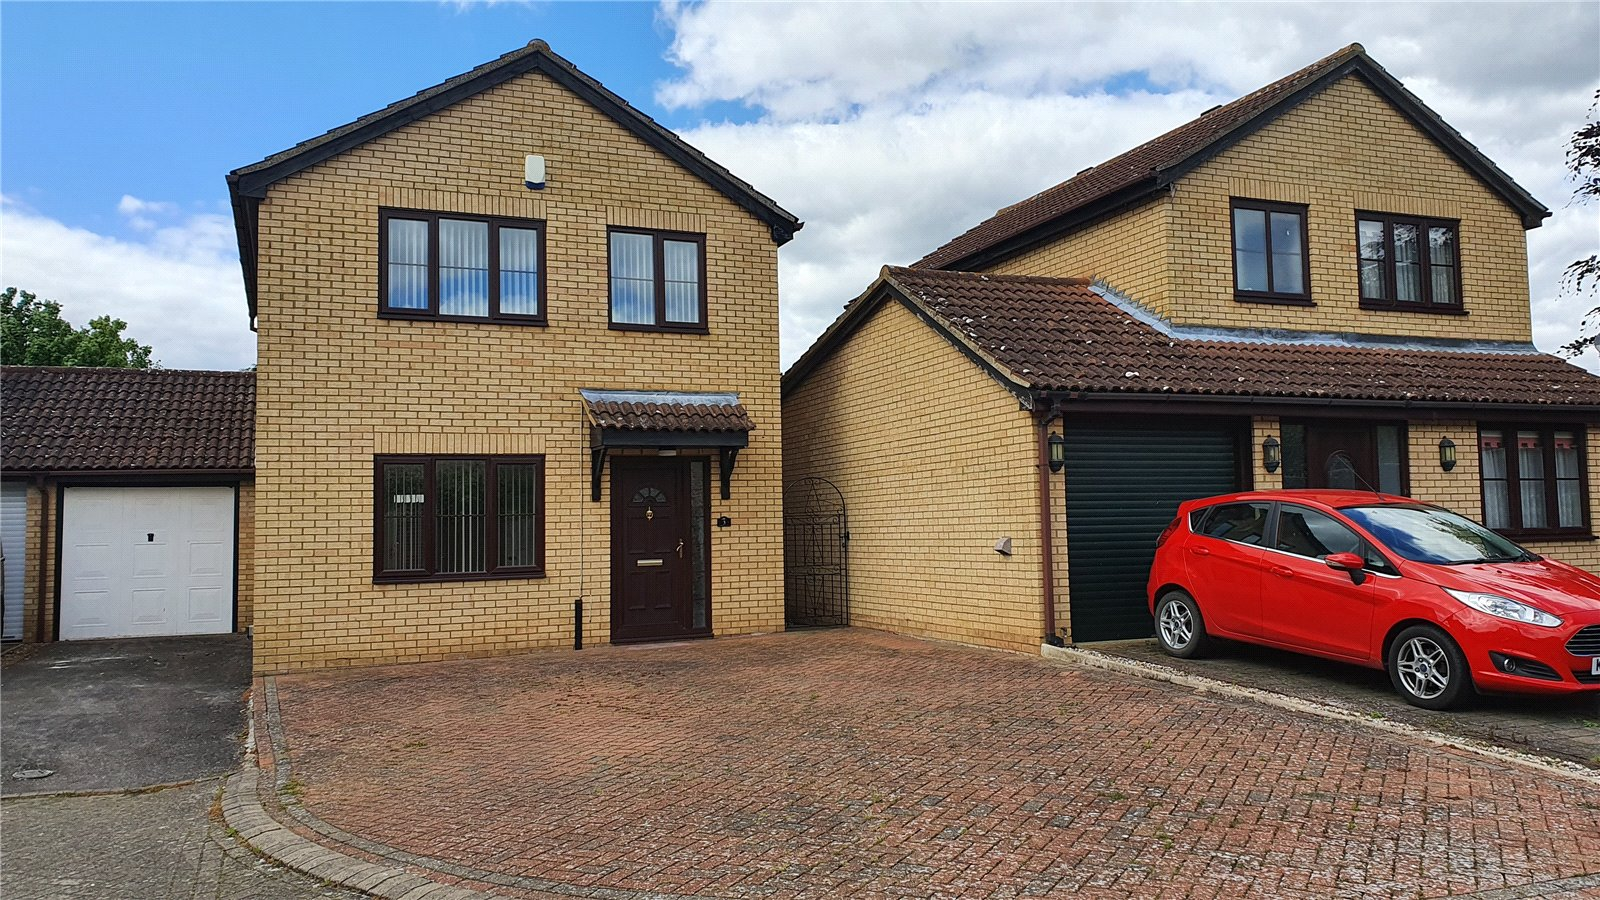 3 bed house for sale in Wyboston, MK44